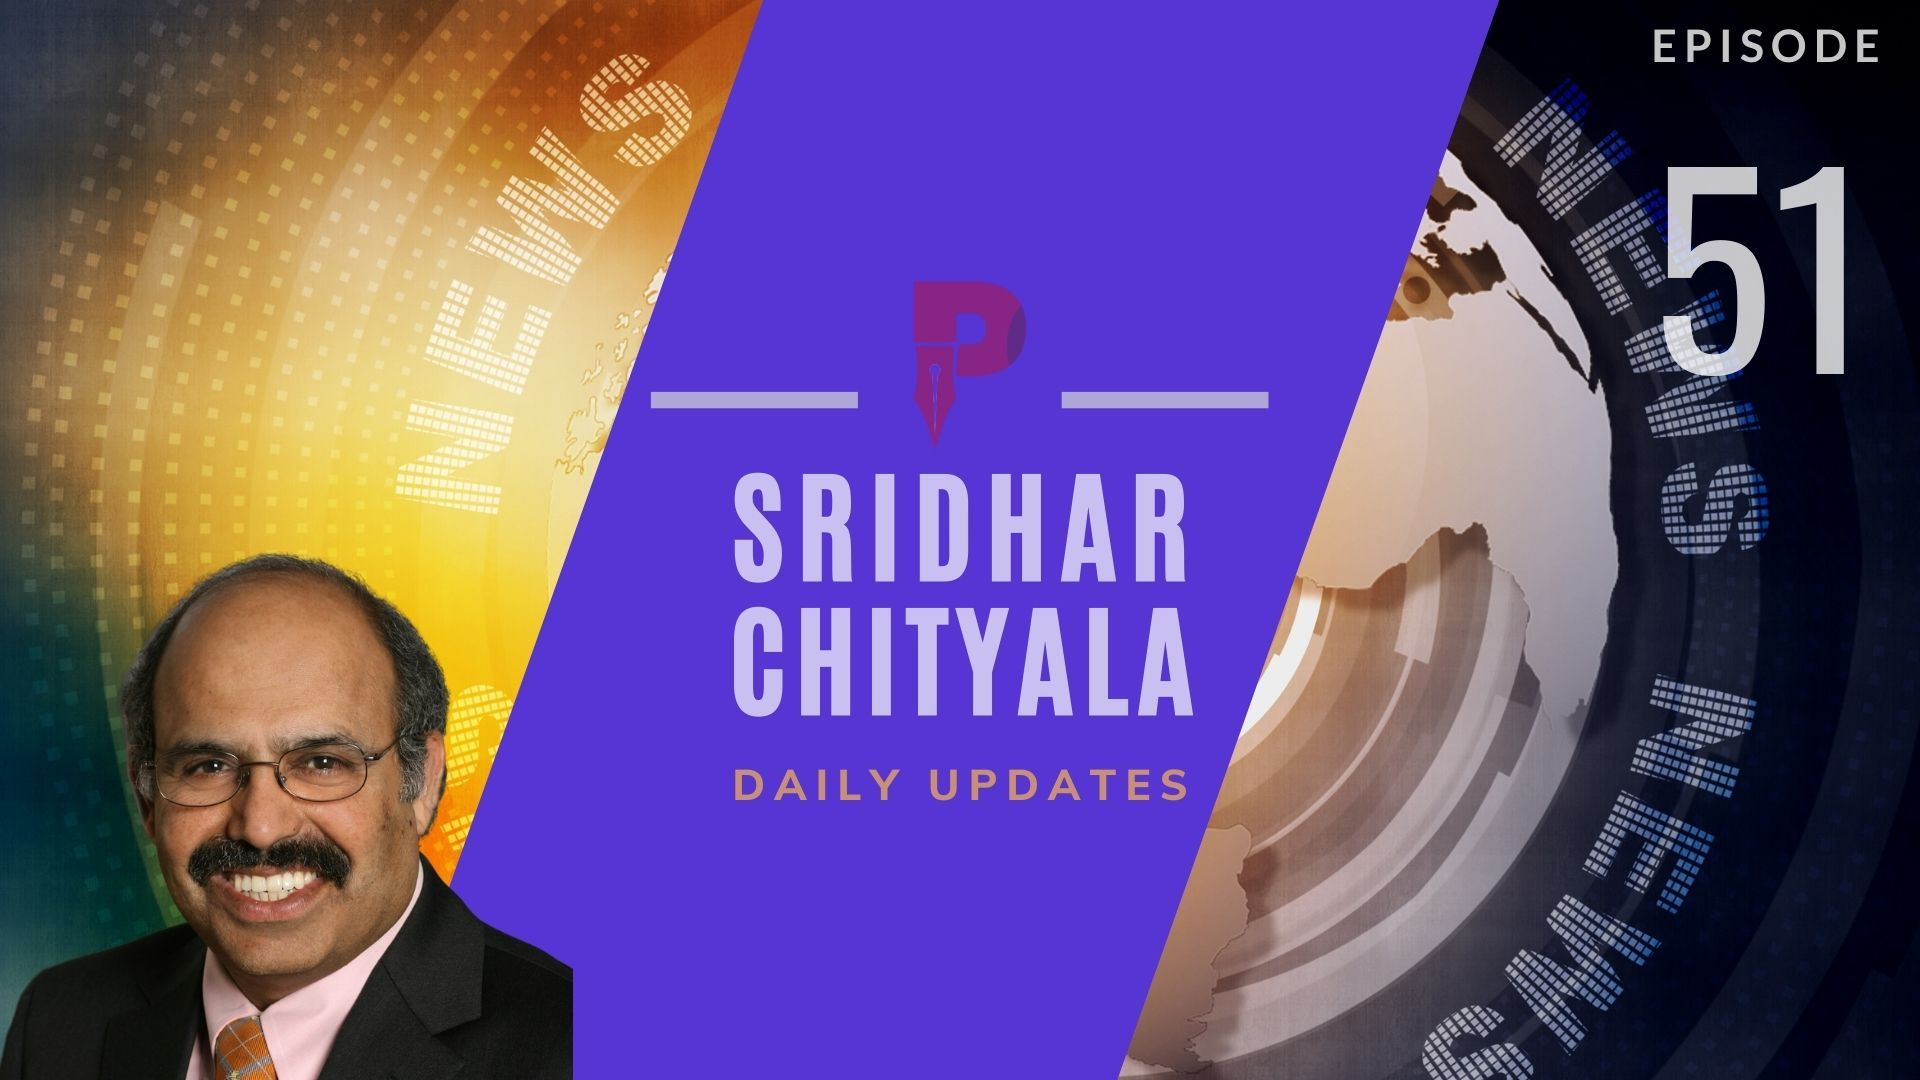 #DailyGlobalInsightsWithSriAndSree #Episode51 As the United States struggles to figure out who its next President is going to be, a lot is happening around the world, with rogue nations thinking that the cat is out and the mice can play. This is a fact-filled news analysis segment that you cannot afford to miss.